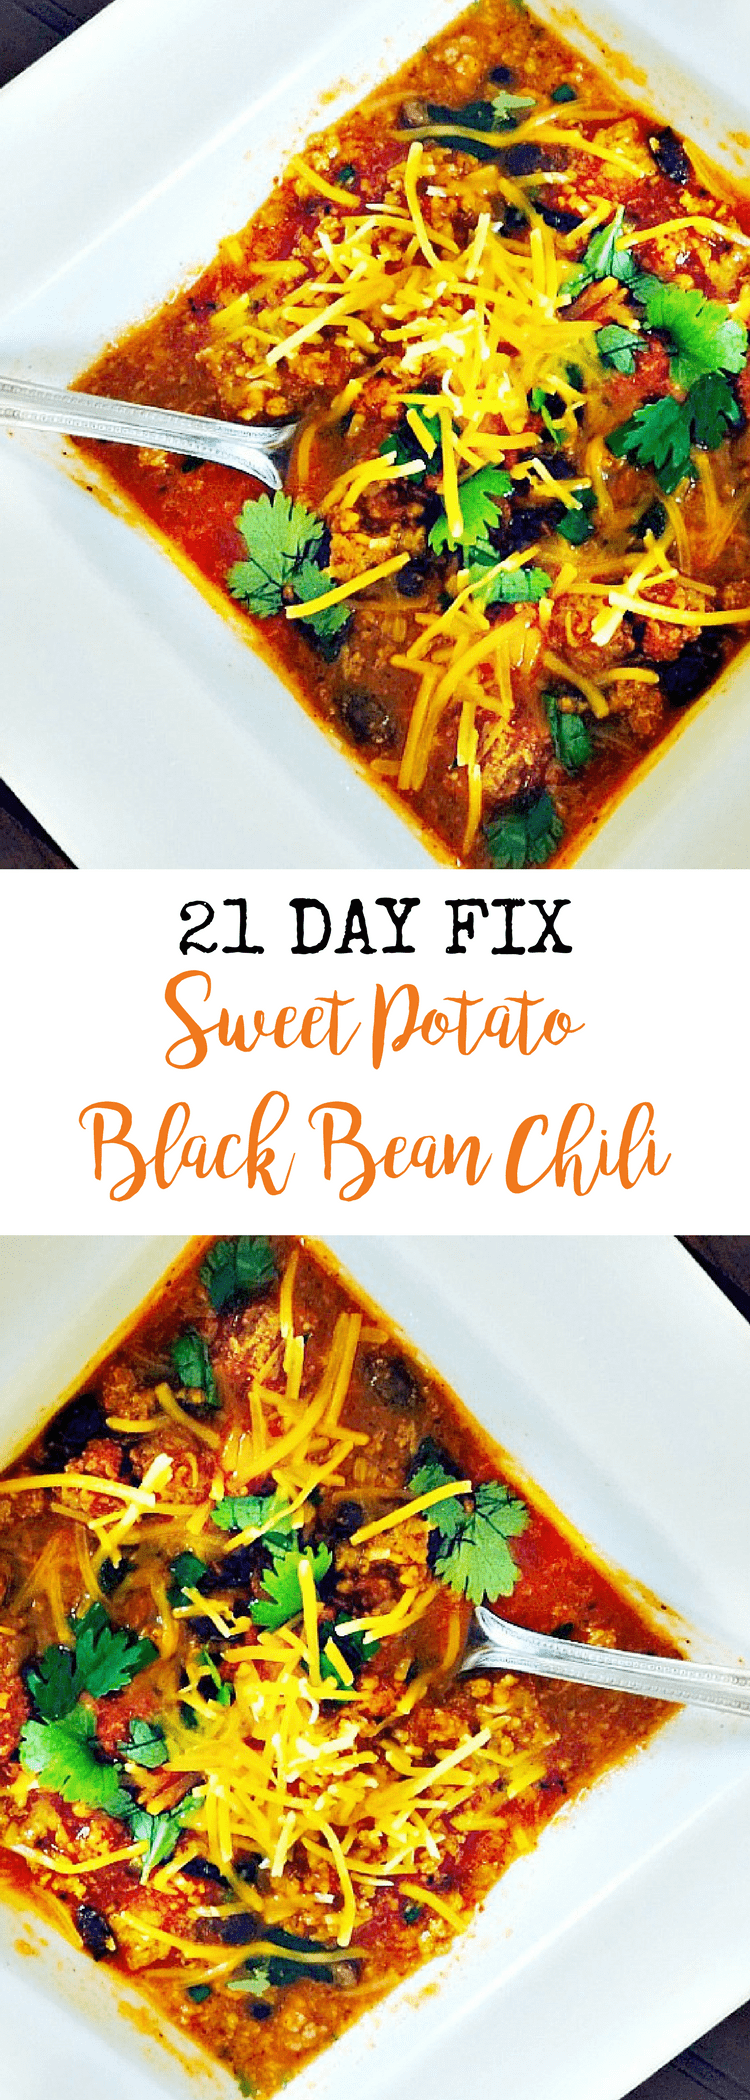 21 Day Fix Sweet Potato Black Bean Chili | Confessions of a Fit Foodie